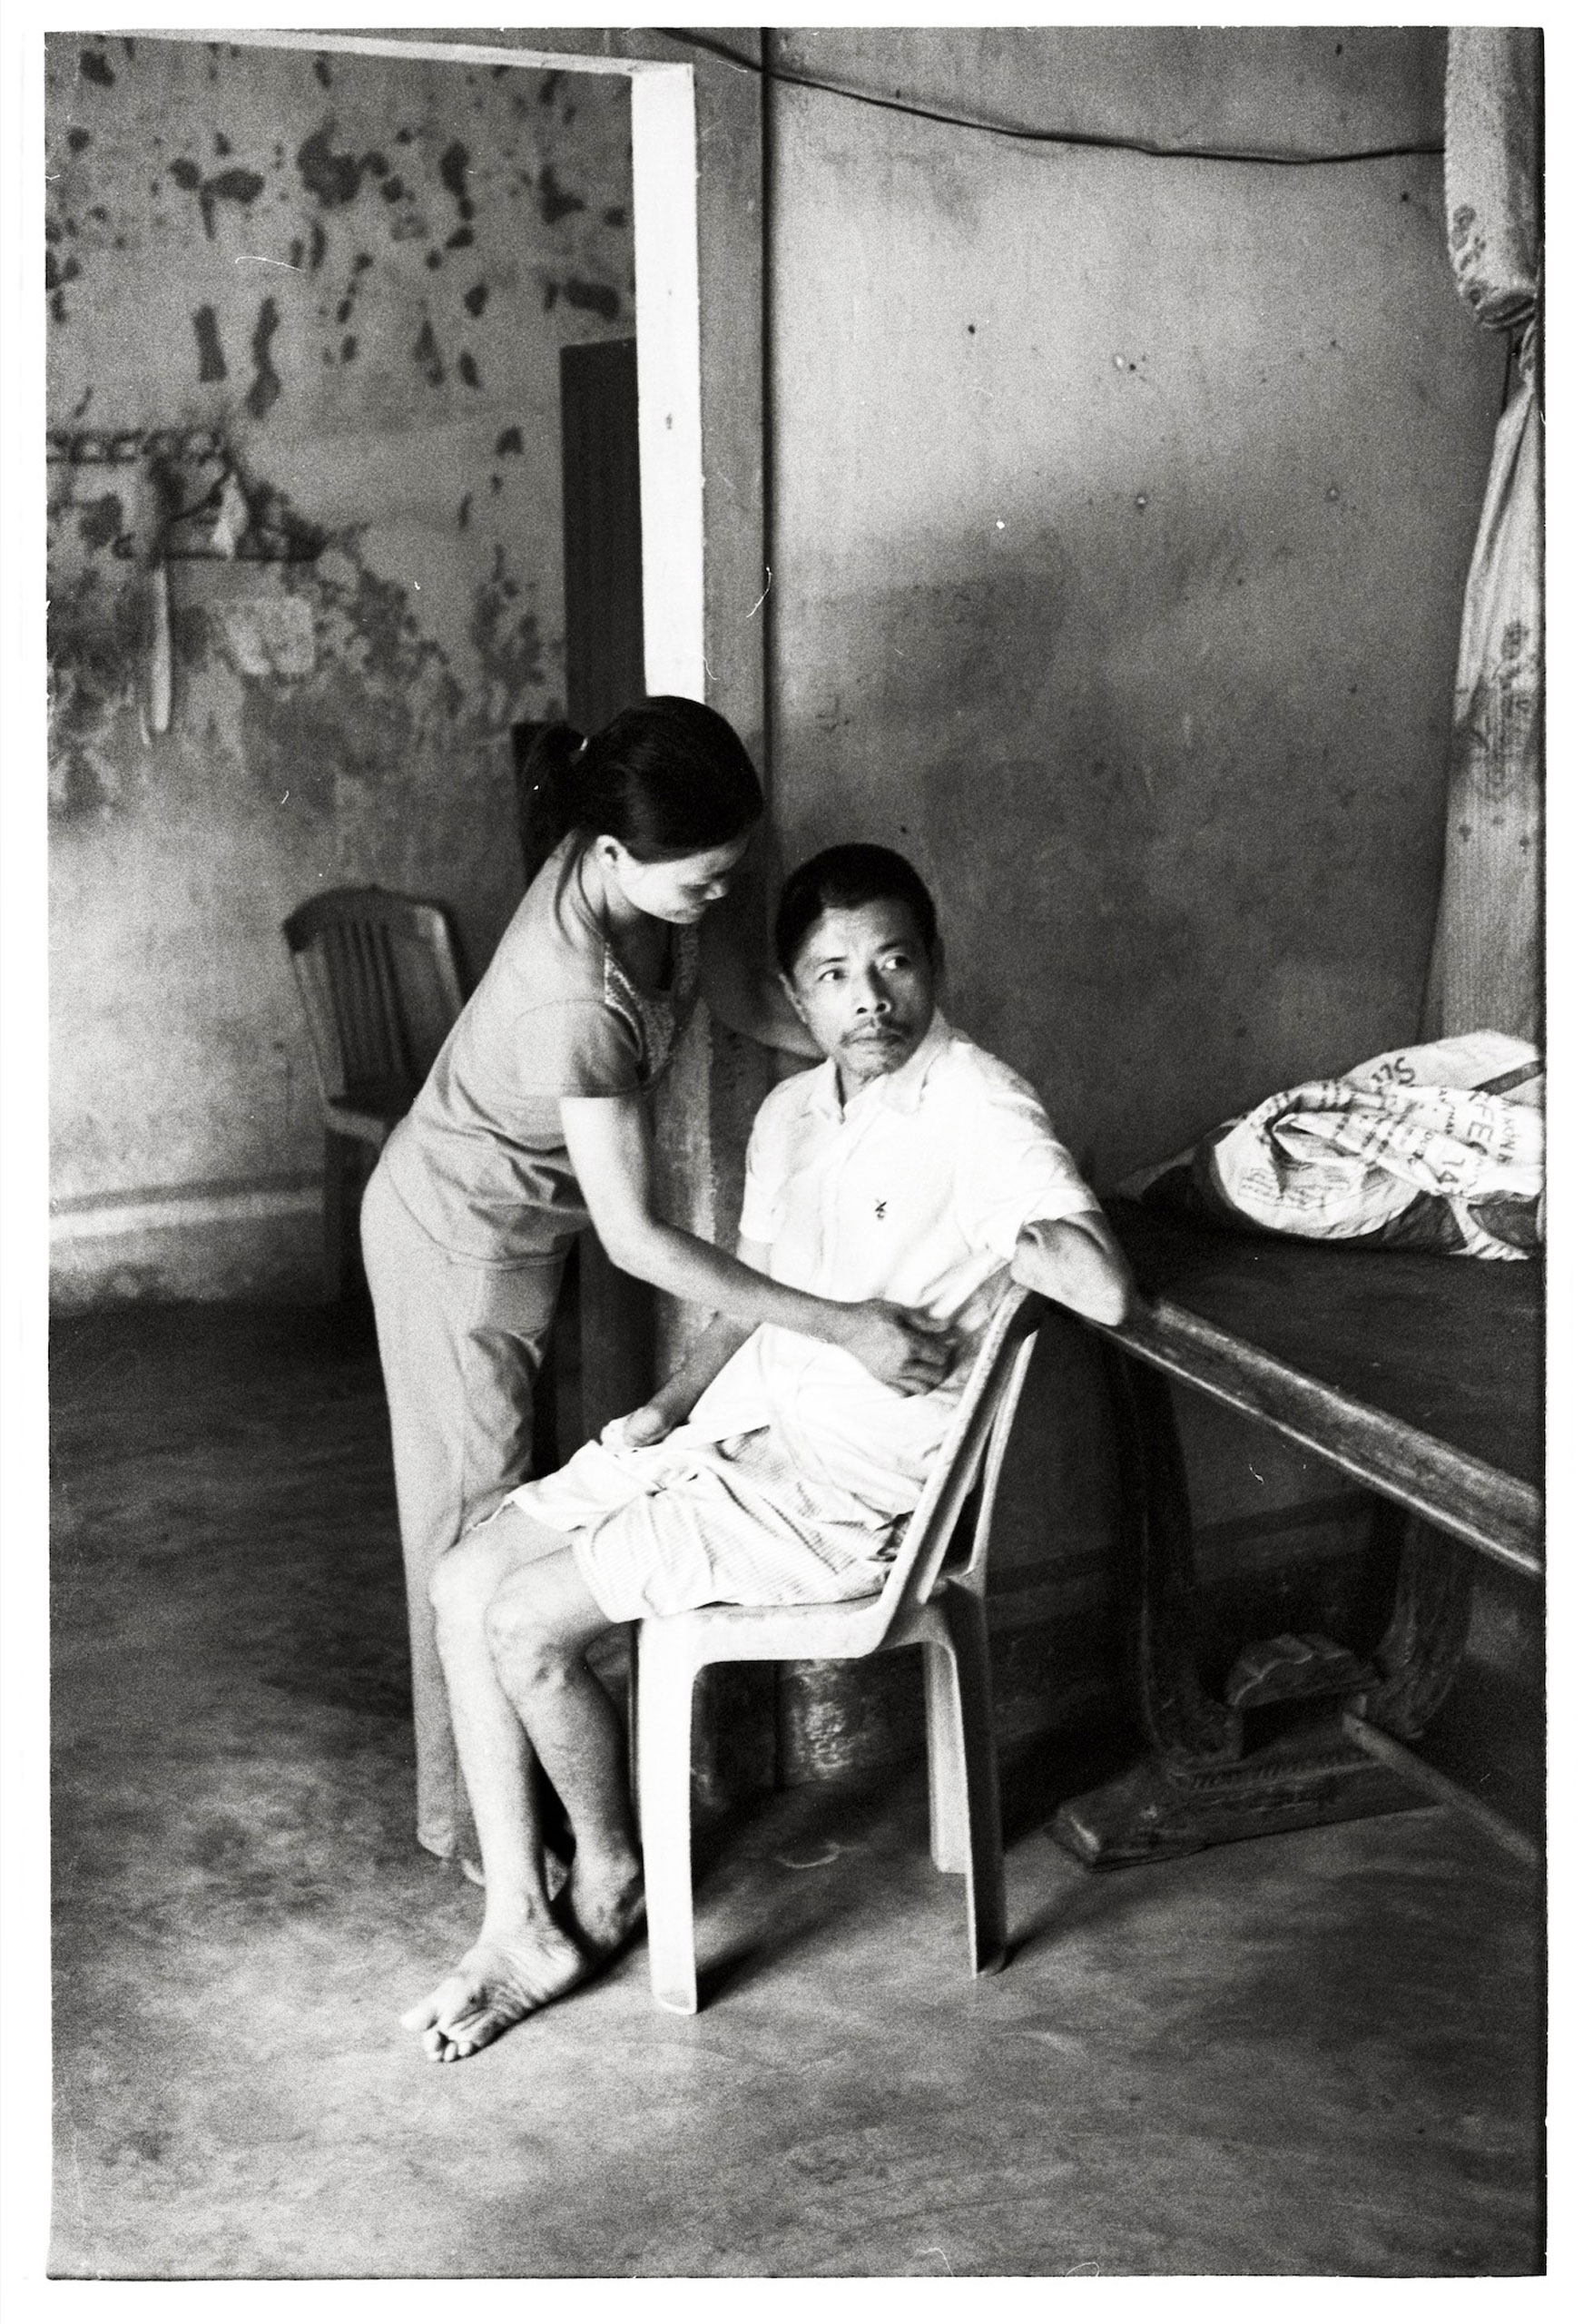 Vietnam 2014 Mr. Dinh Thu lost both arms and was left brain-damaged when an unexploded bomb detonated in his garden. His wife is now his full-time caretaker.